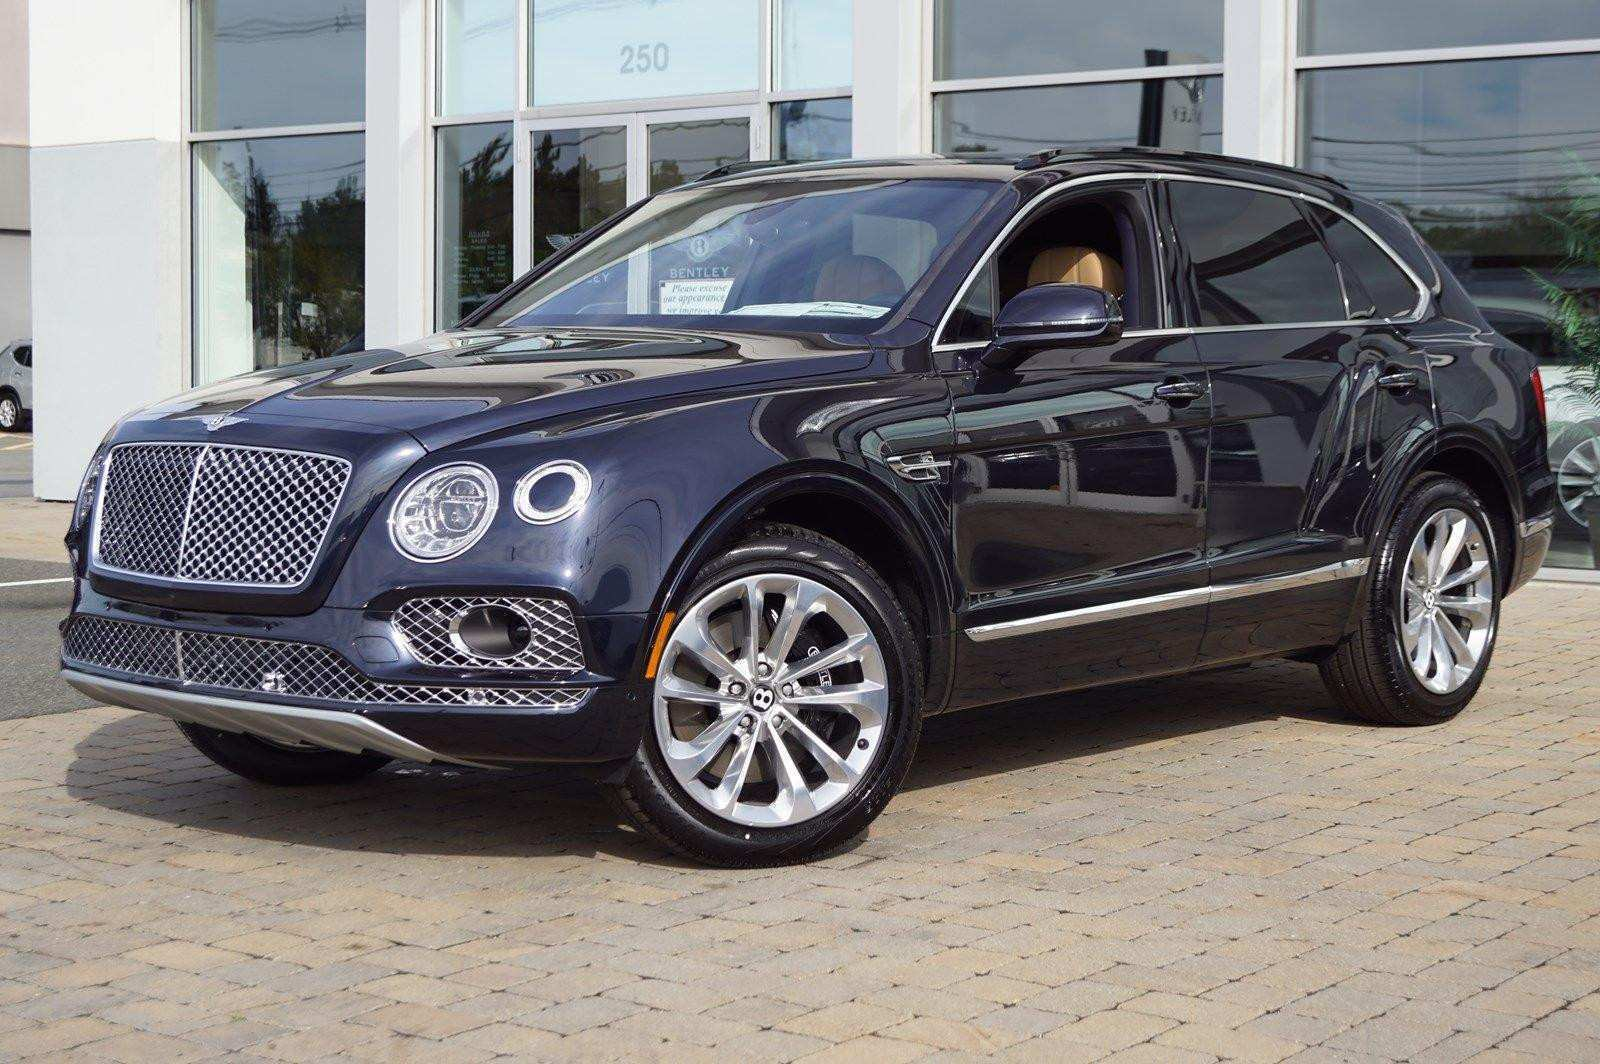 39 New 2019 Bentley Truck Reviews by 2019 Bentley Truck